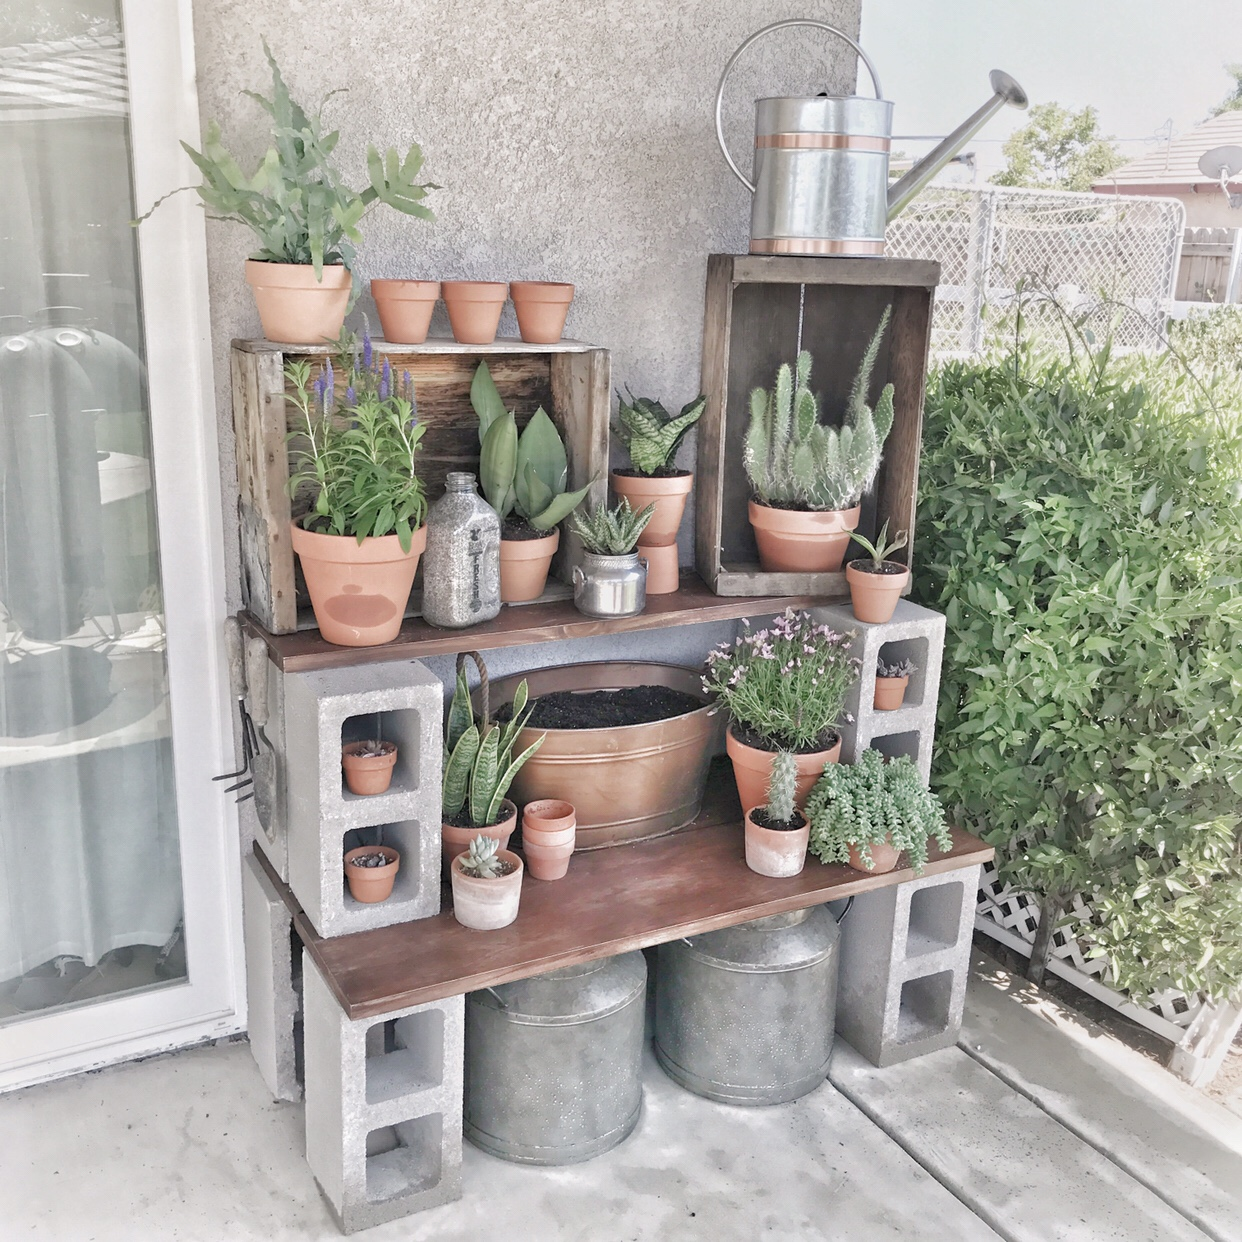 The Cool Things People Are Doing With Cinder Blocks In Their Gardens